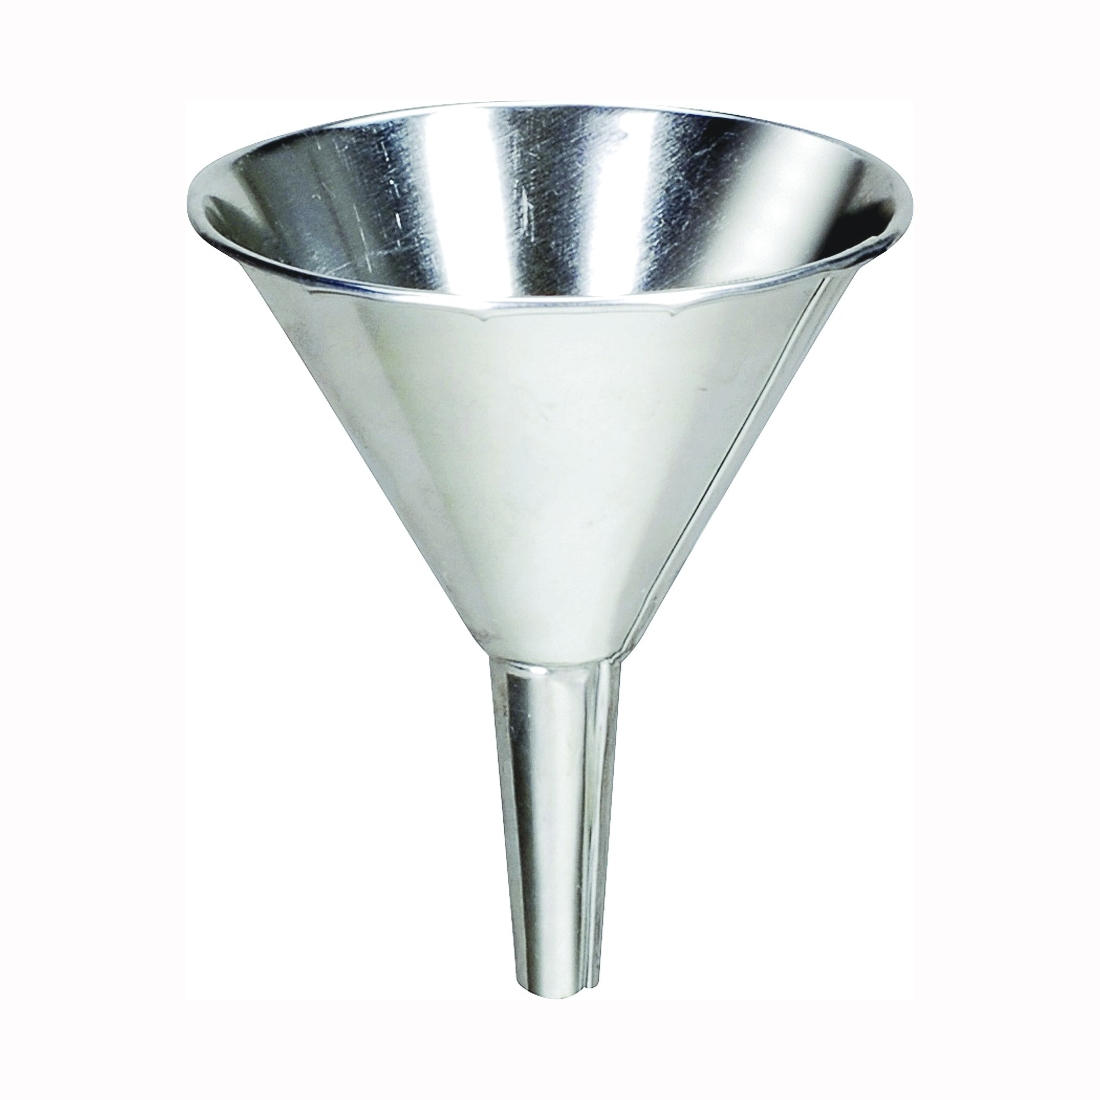 Picture of Behrens B15 Funnel, 5 oz Capacity, Tin, 4-1/2 in H